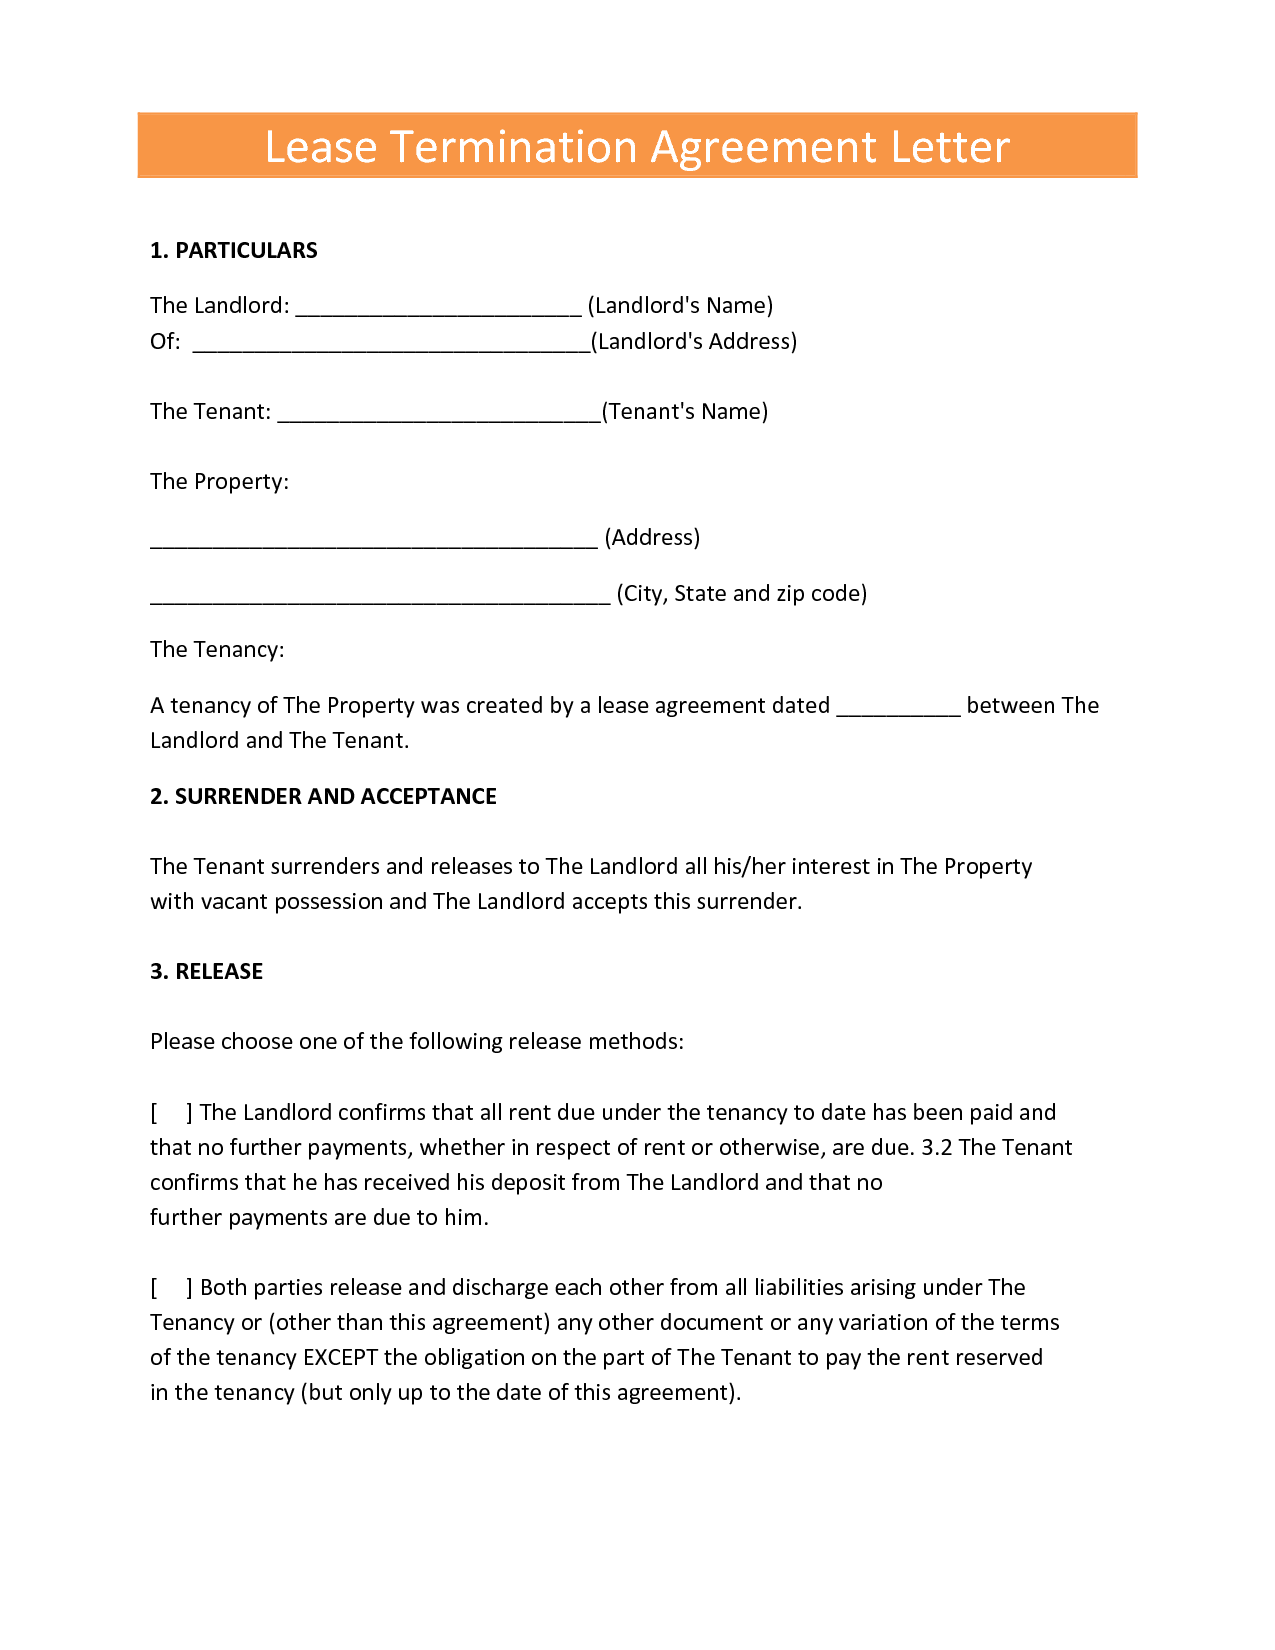 lease termination agreement letter by elfir61807